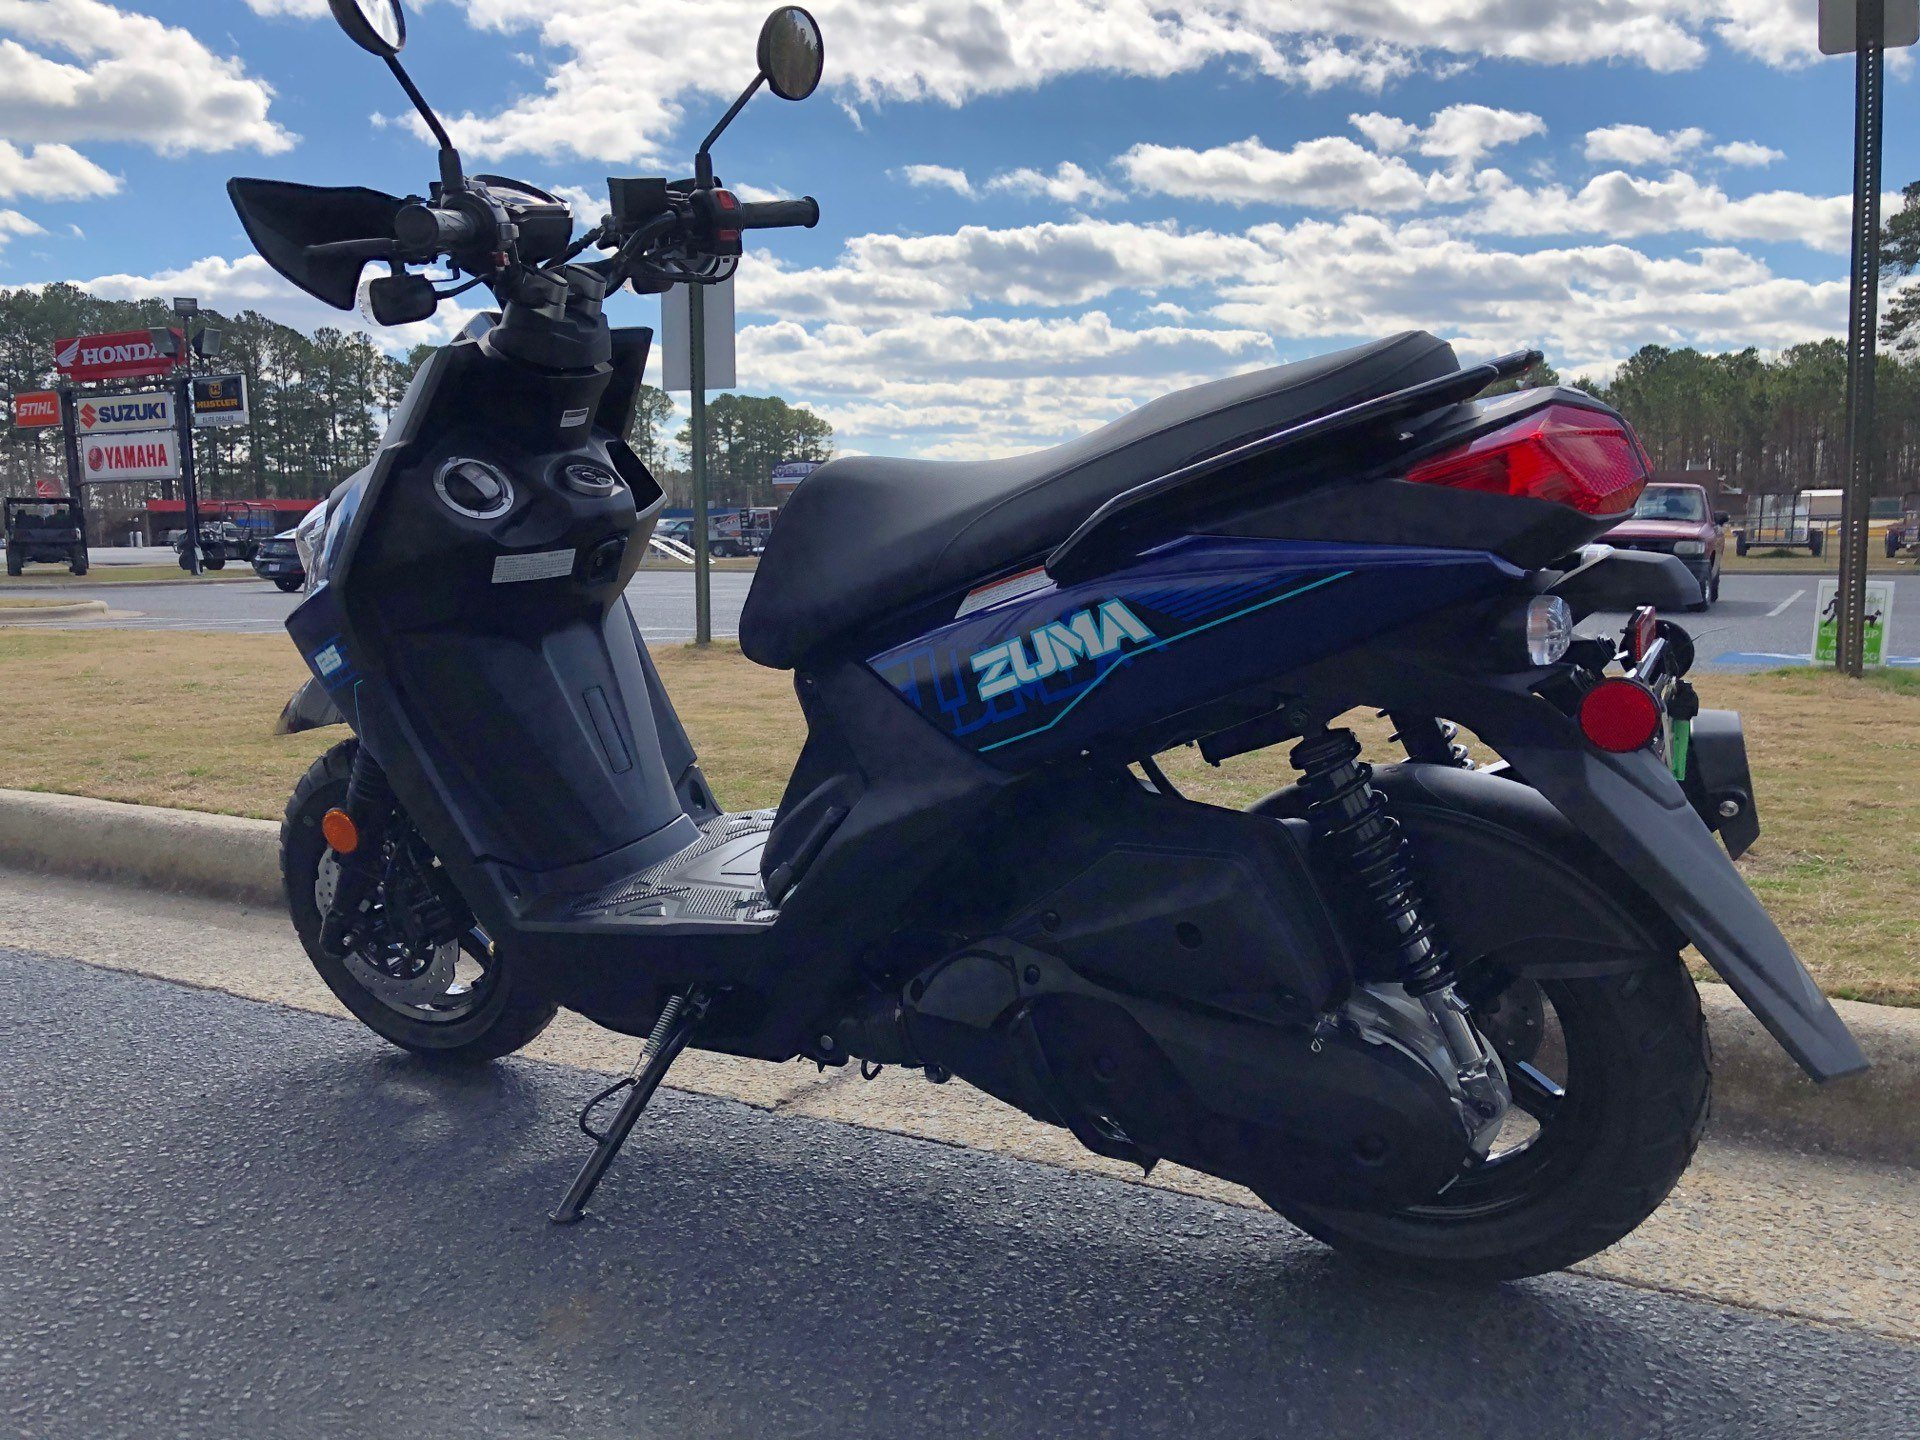 2020 Yamaha Zuma 125 in Greenville, North Carolina - Photo 8